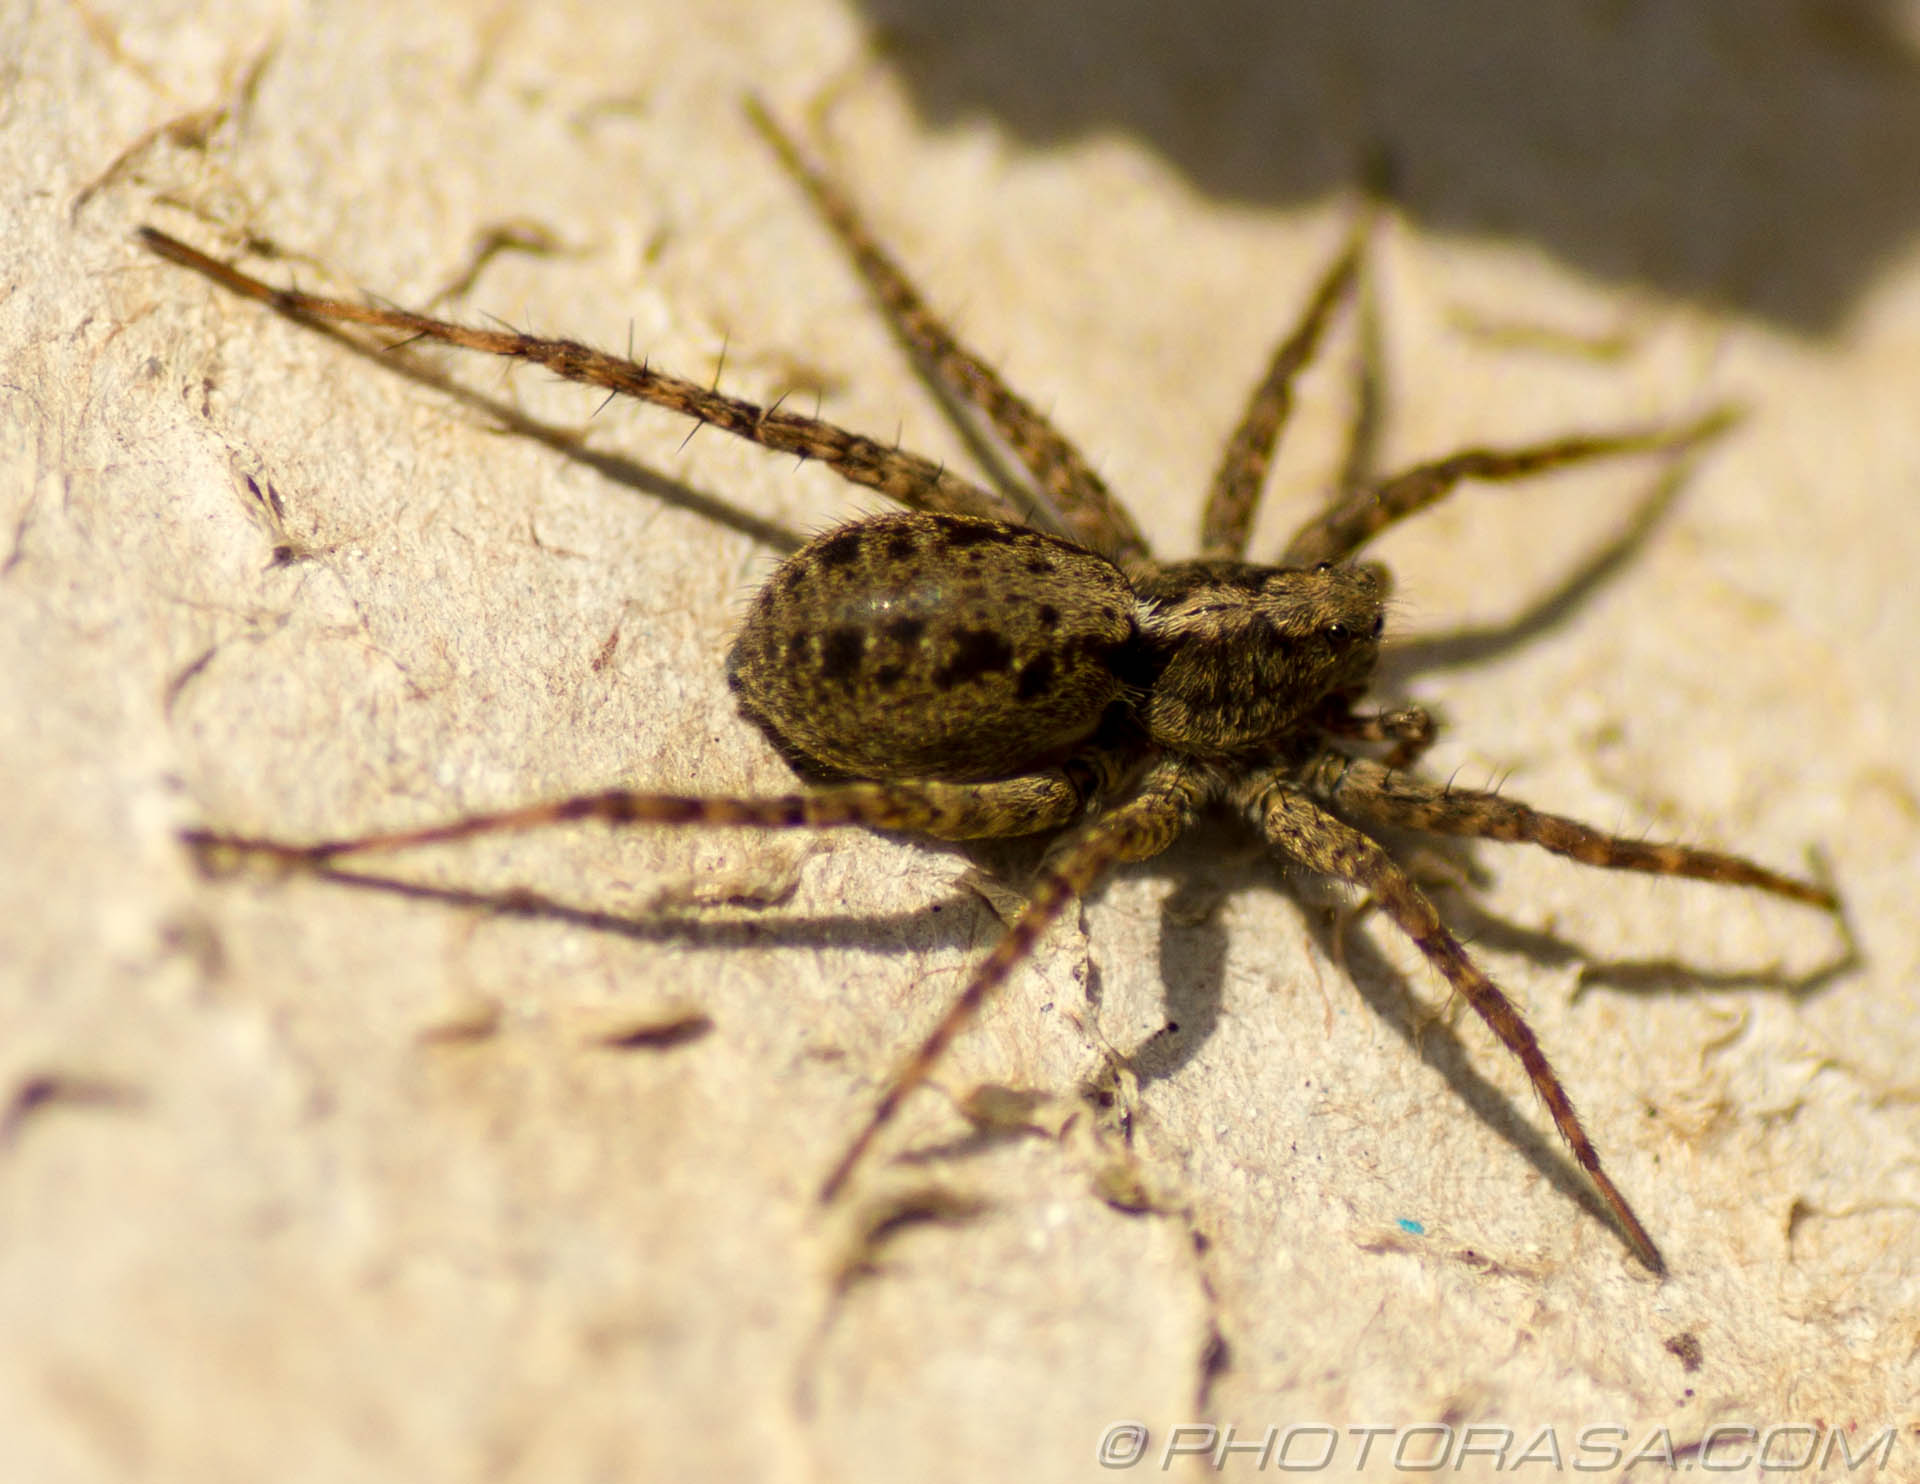 http://photorasa.com/wolf-spiders/female-uk-wolf-spider/